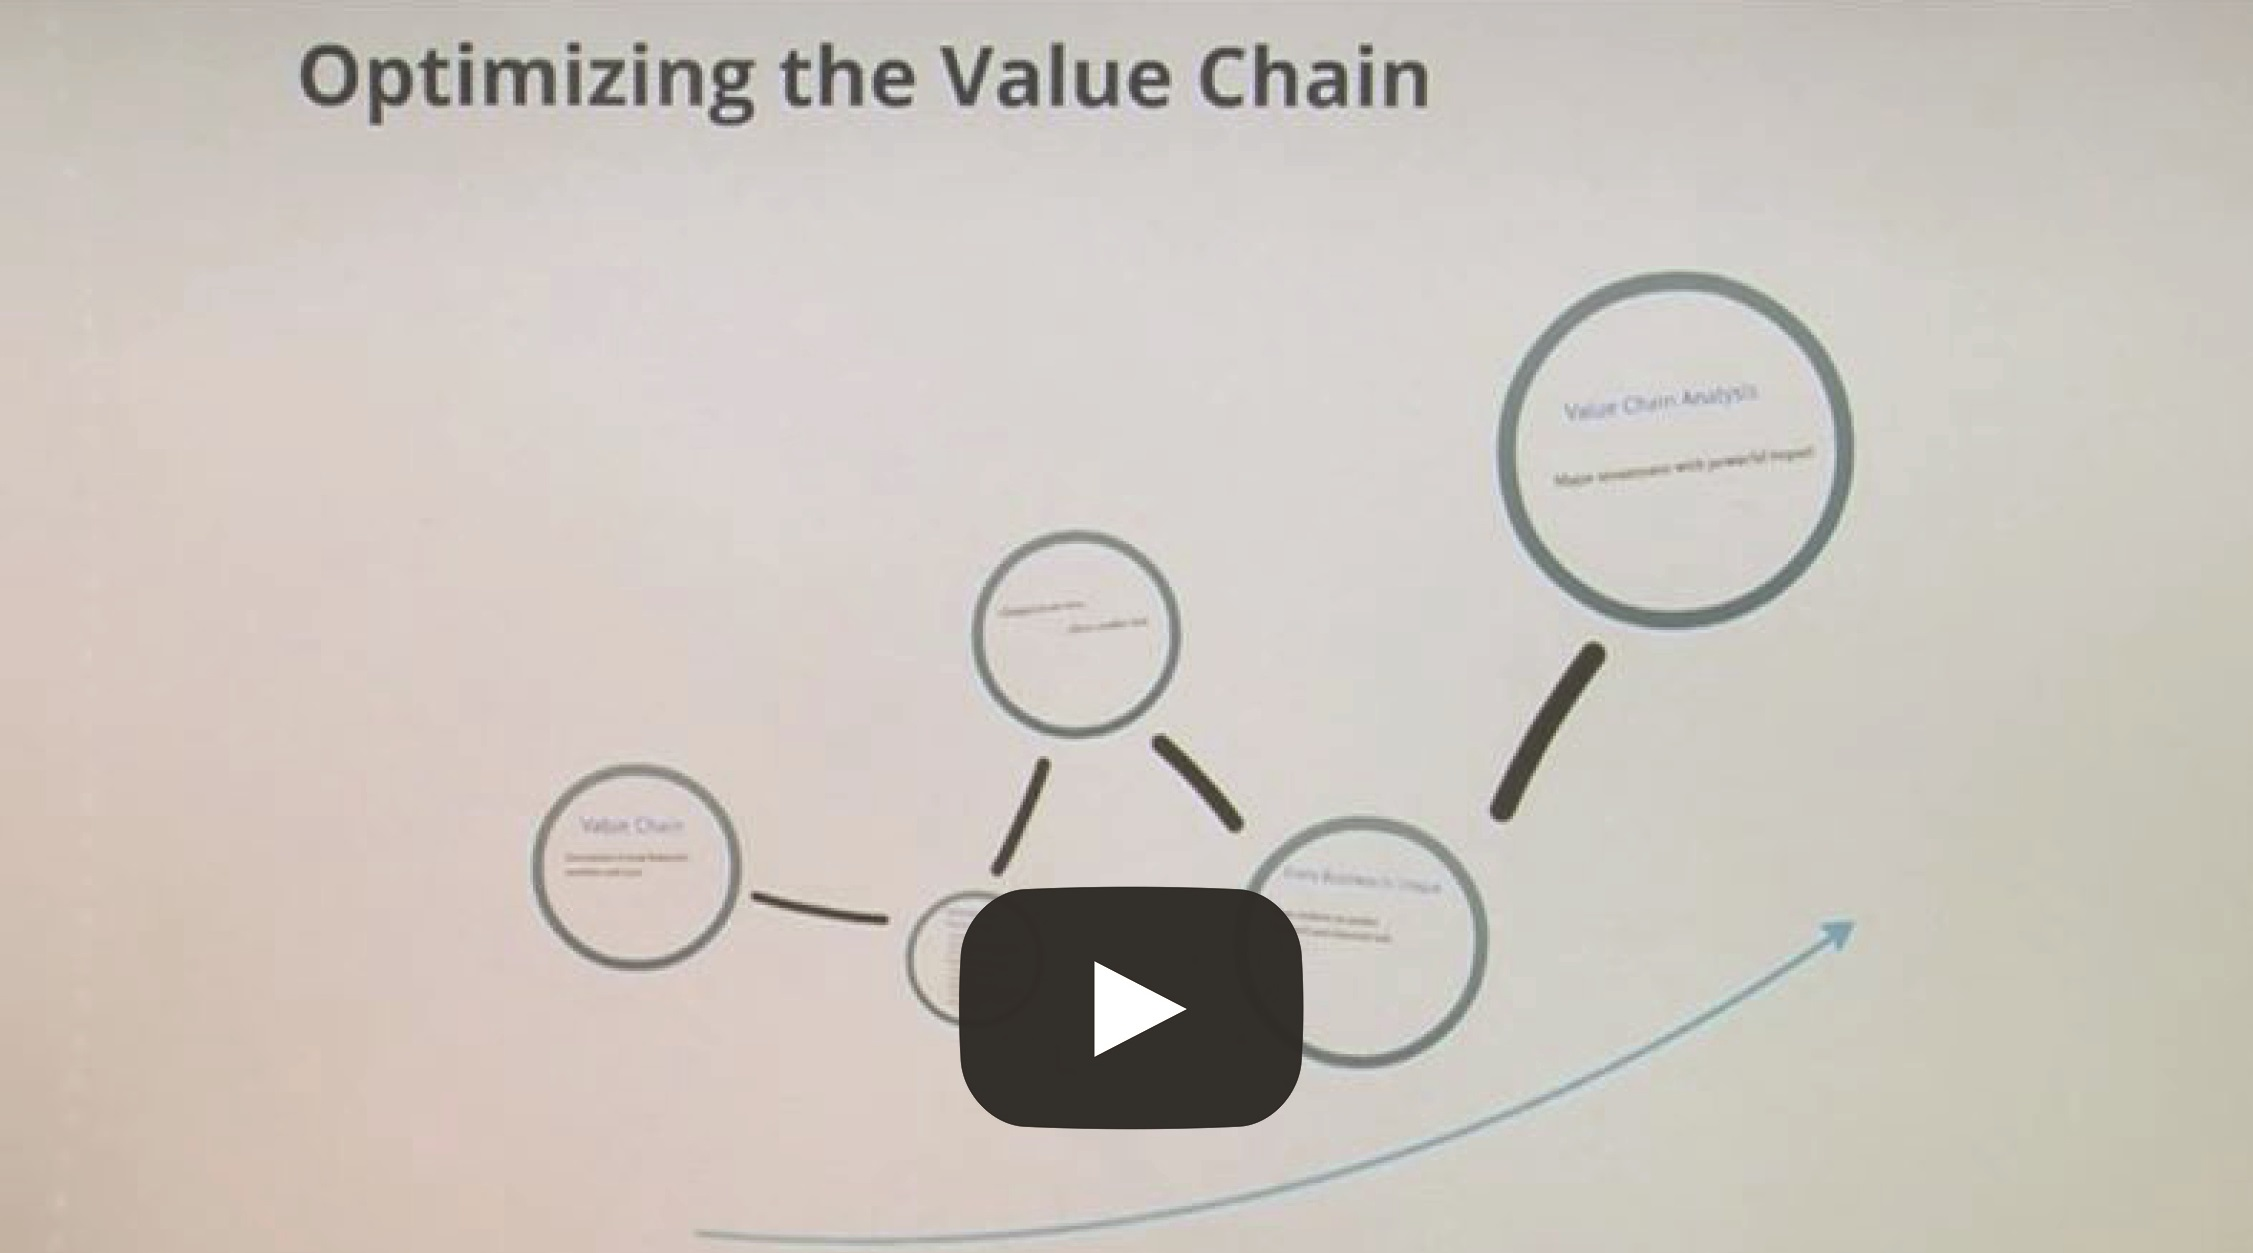 Optimizing the Value Chain